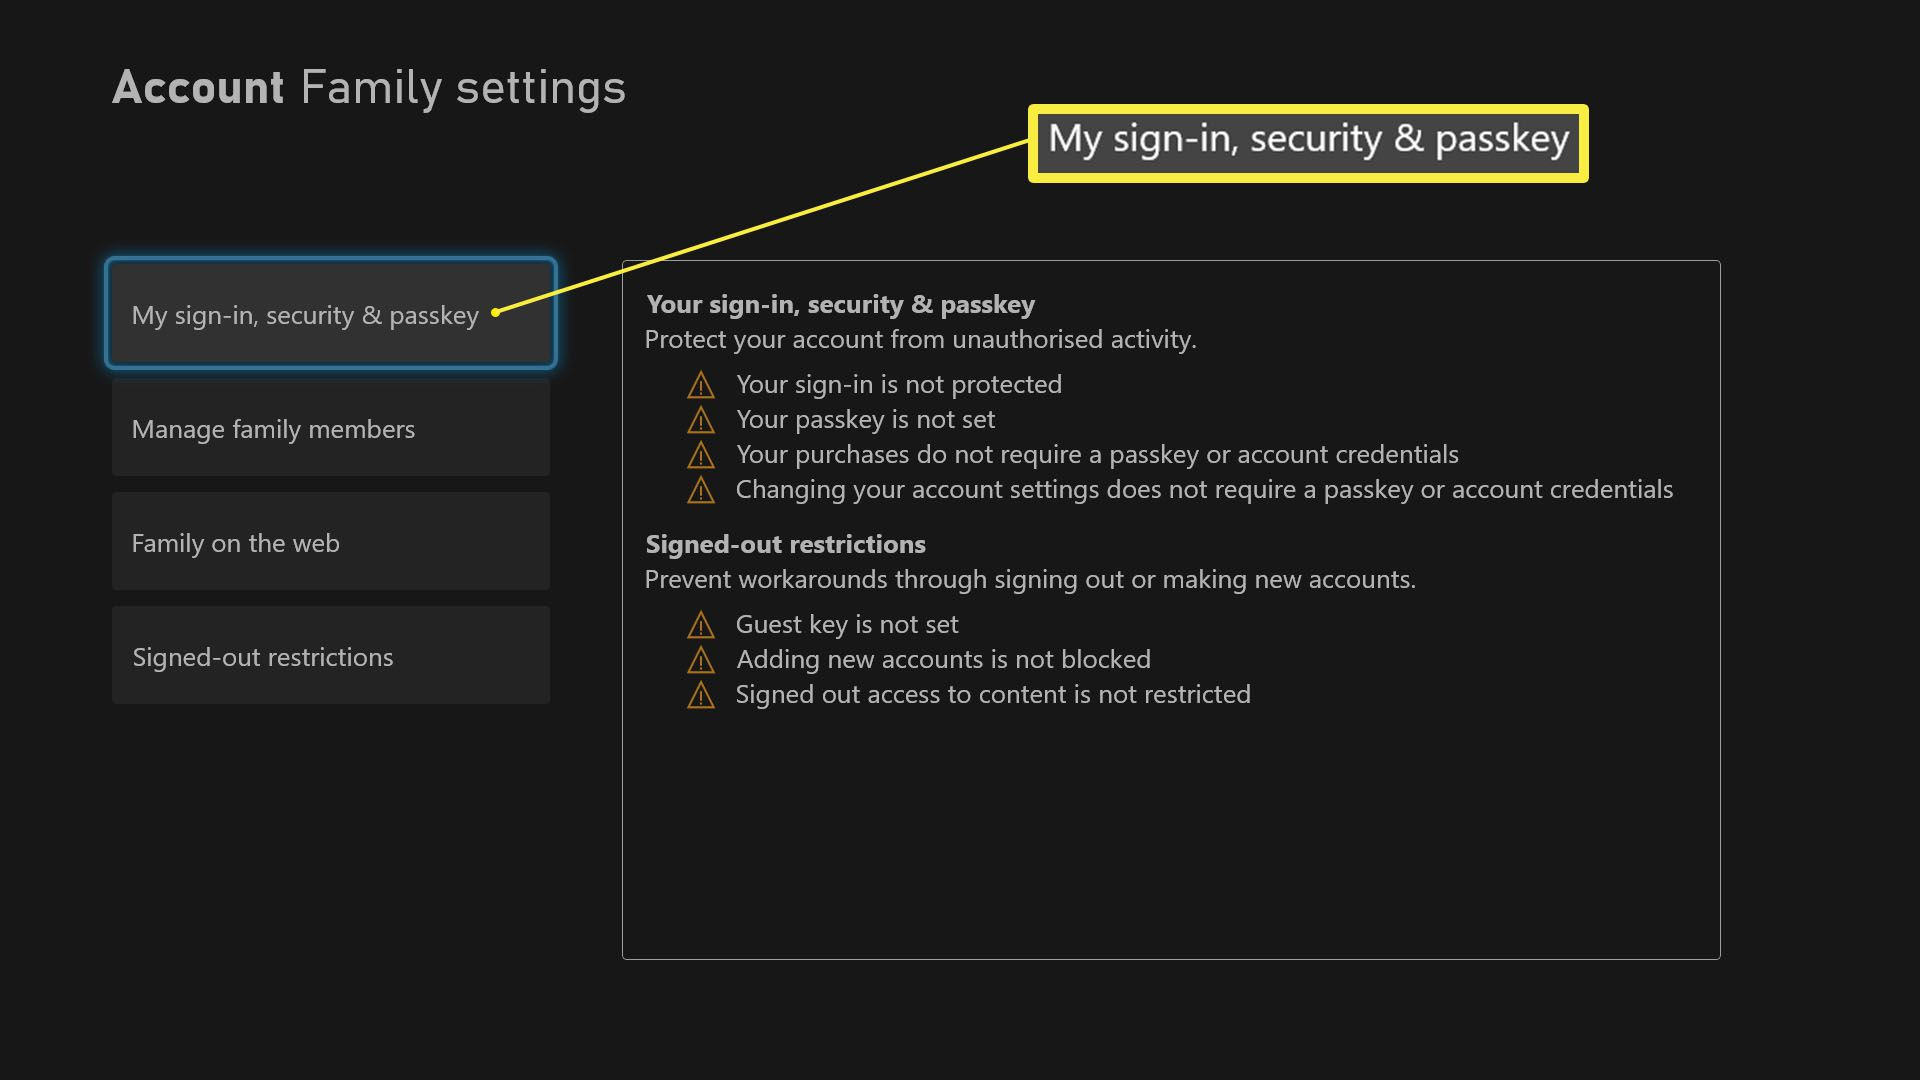 Xbox Series X Family Settings with My Sign-in, security and passkey highlighted